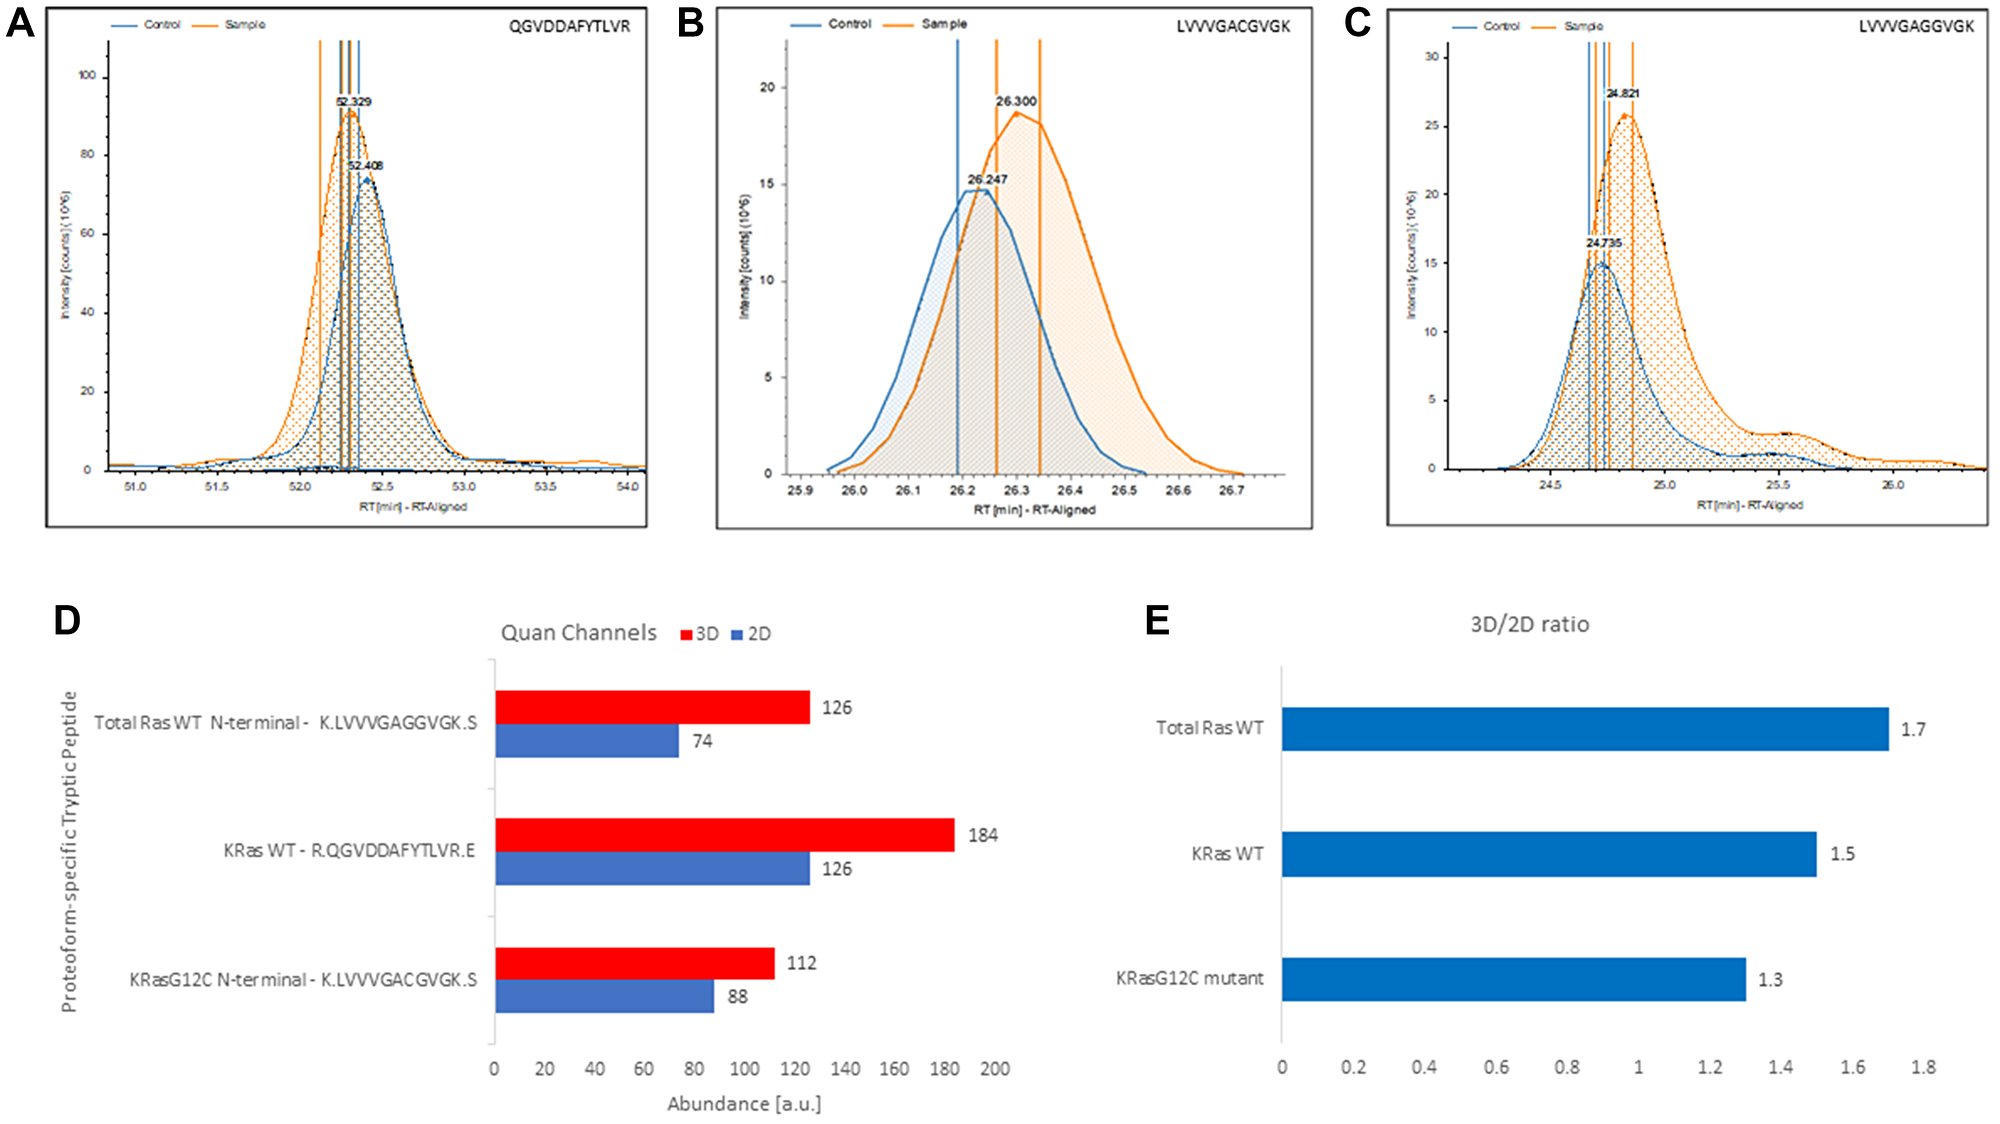 Label-free, gel-free, and antibody-free quantitation of Ras from complex mixture targeting exclusively proteoform-specific tryptic peptides detected in 3D-cultured and 2D-cultured NCI-H23 cells.